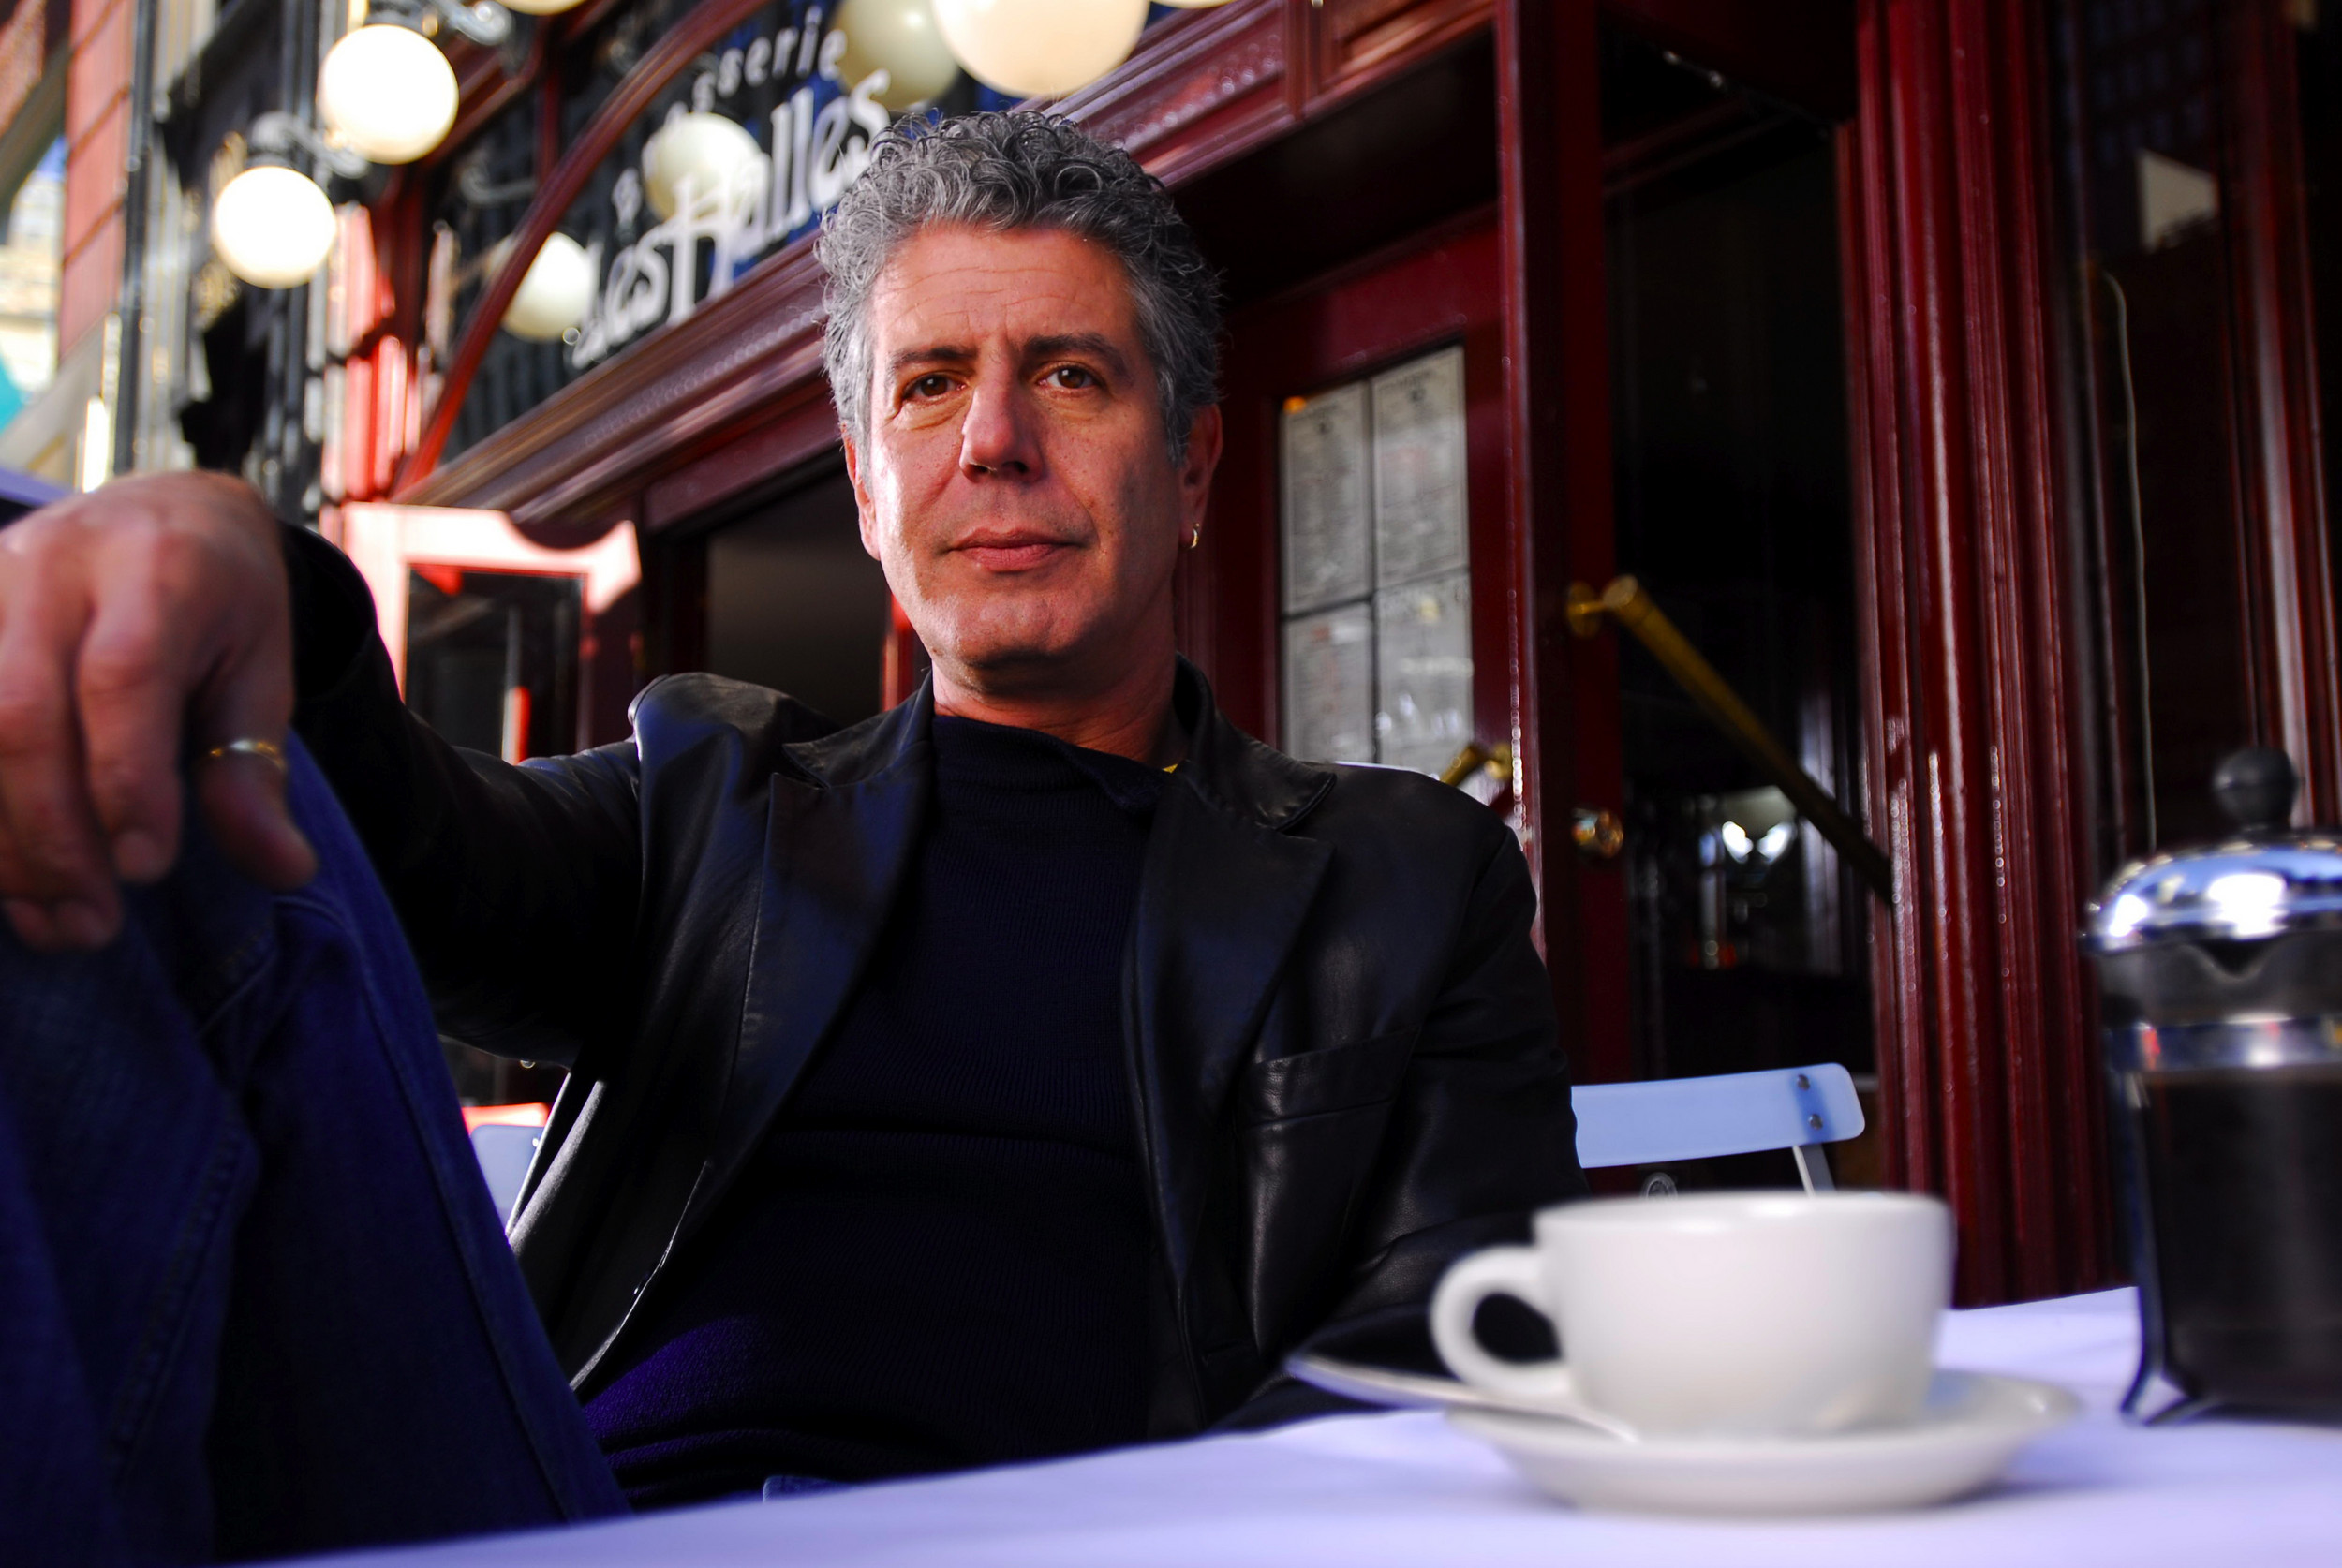 Anthony Bourdain spoke at the Times-Union Center for the Performing Arts April 25.